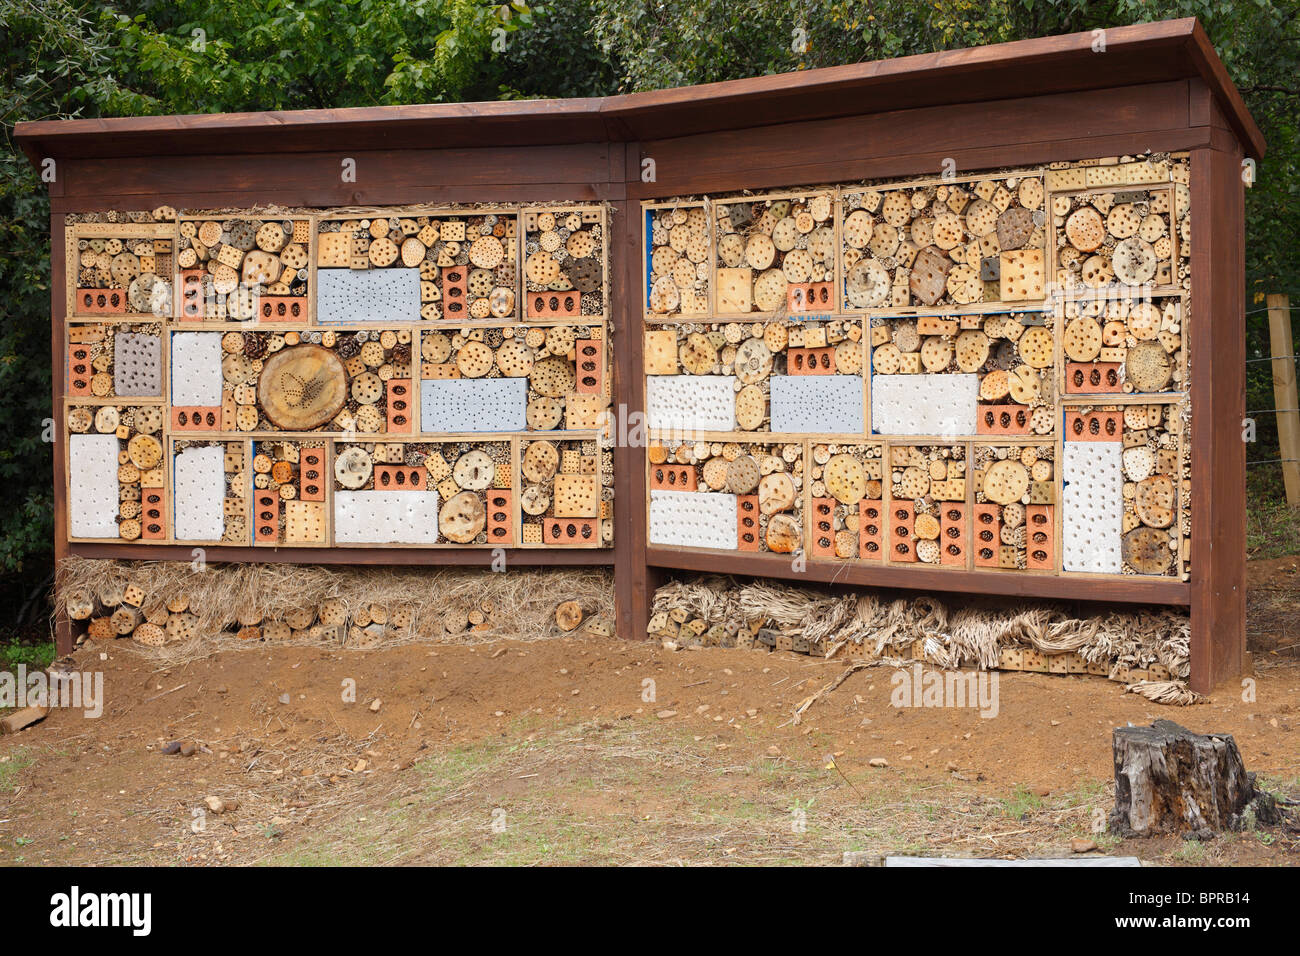 wall built in an attempt to build the worlds largest bee home stock rh alamy com bee homework bee homes south molton